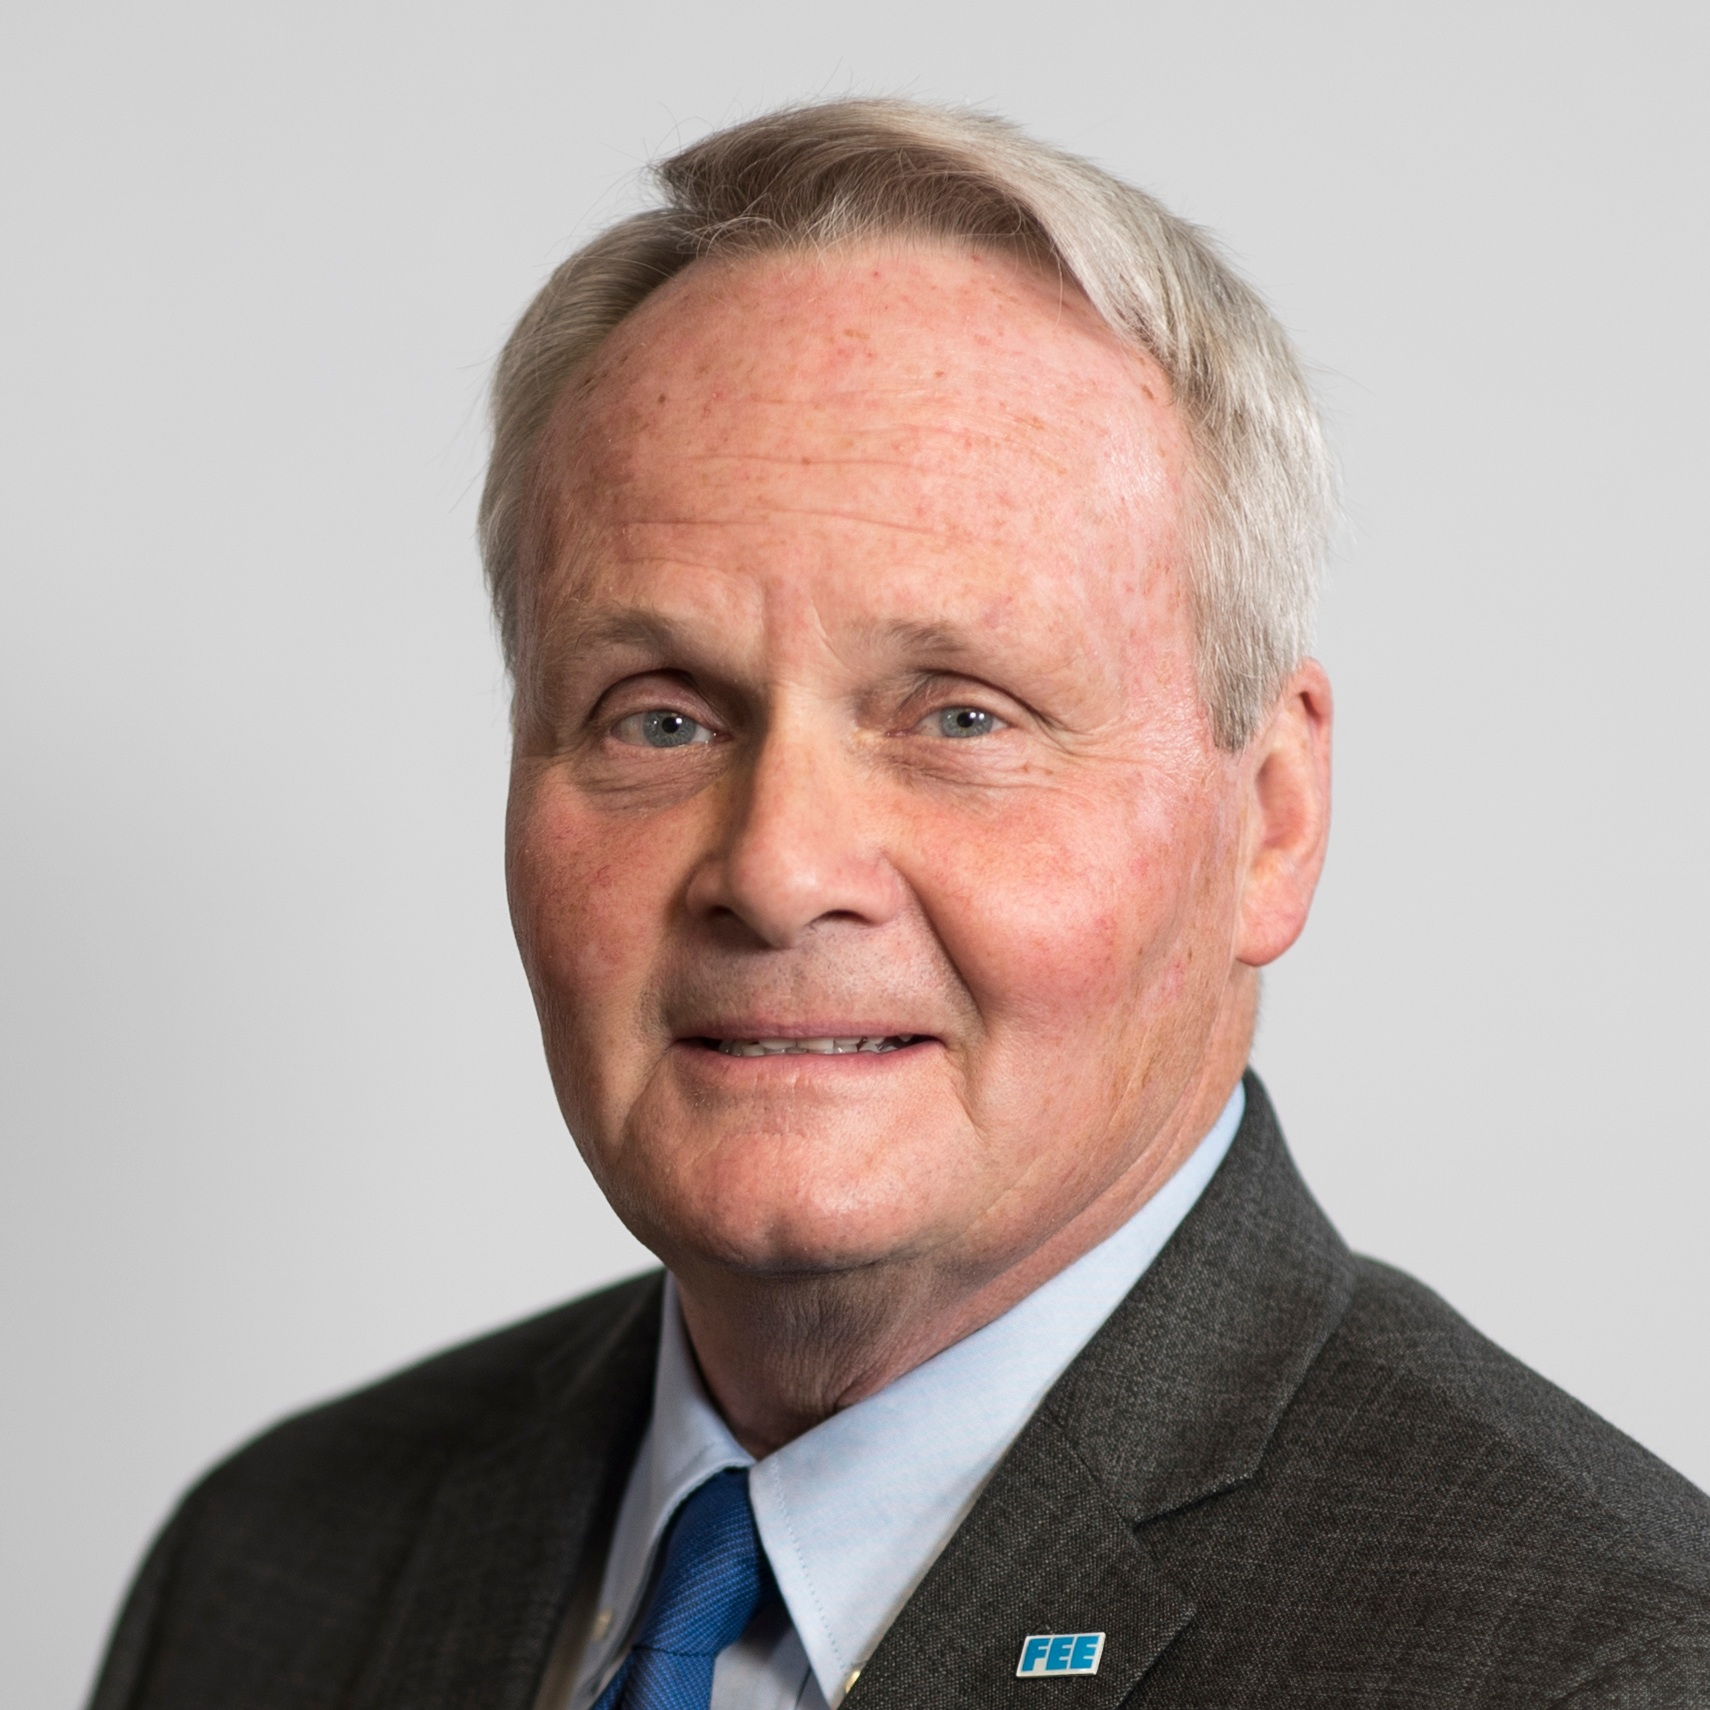 Lawrence Reed  President Emeritus of the Foundation for Economic Education (FEE)